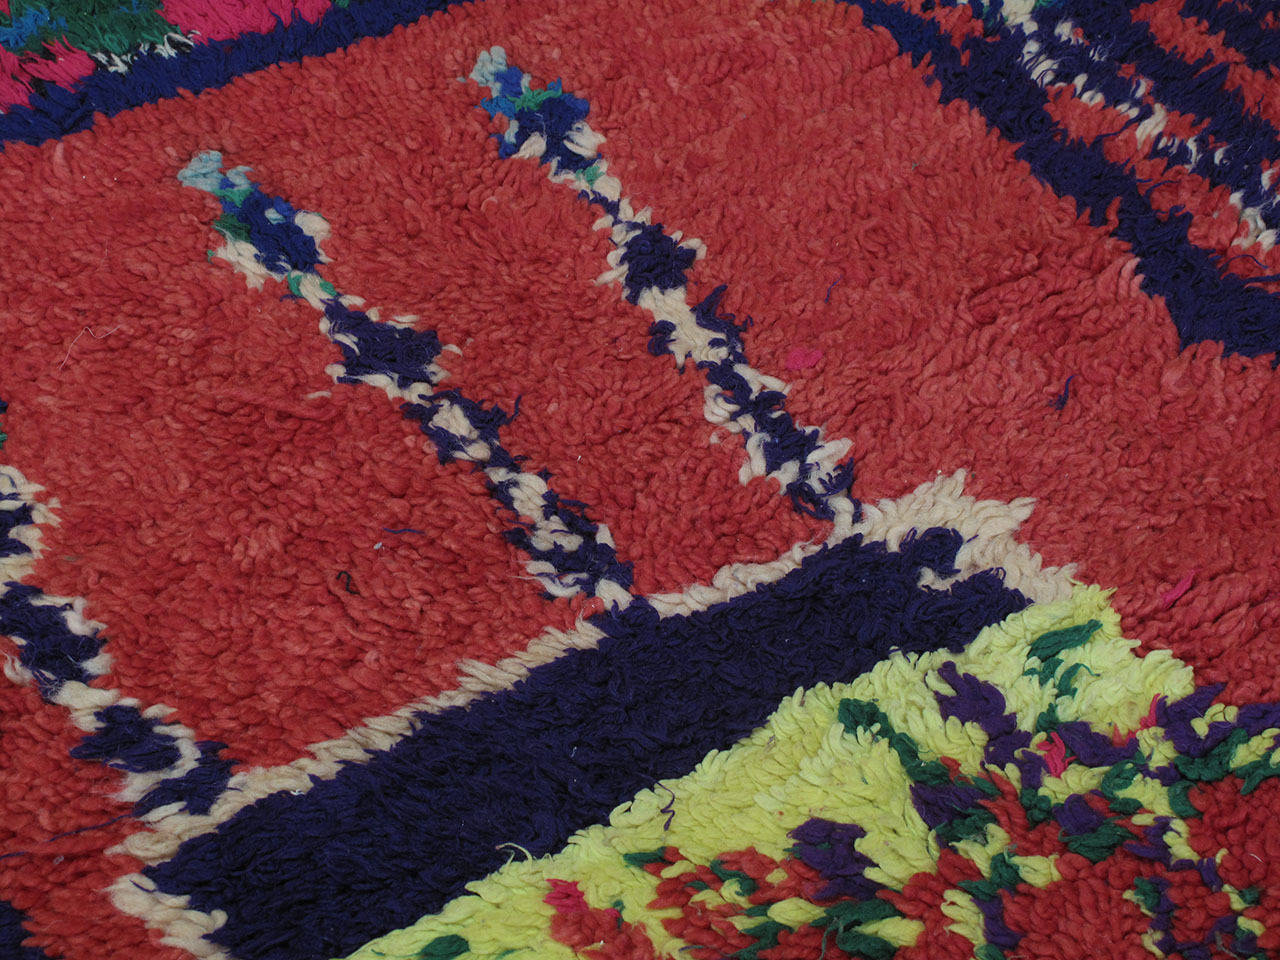 Azilal Moroccan Berber Rug, Saddle Cover In Excellent Condition For Sale In New York, NY